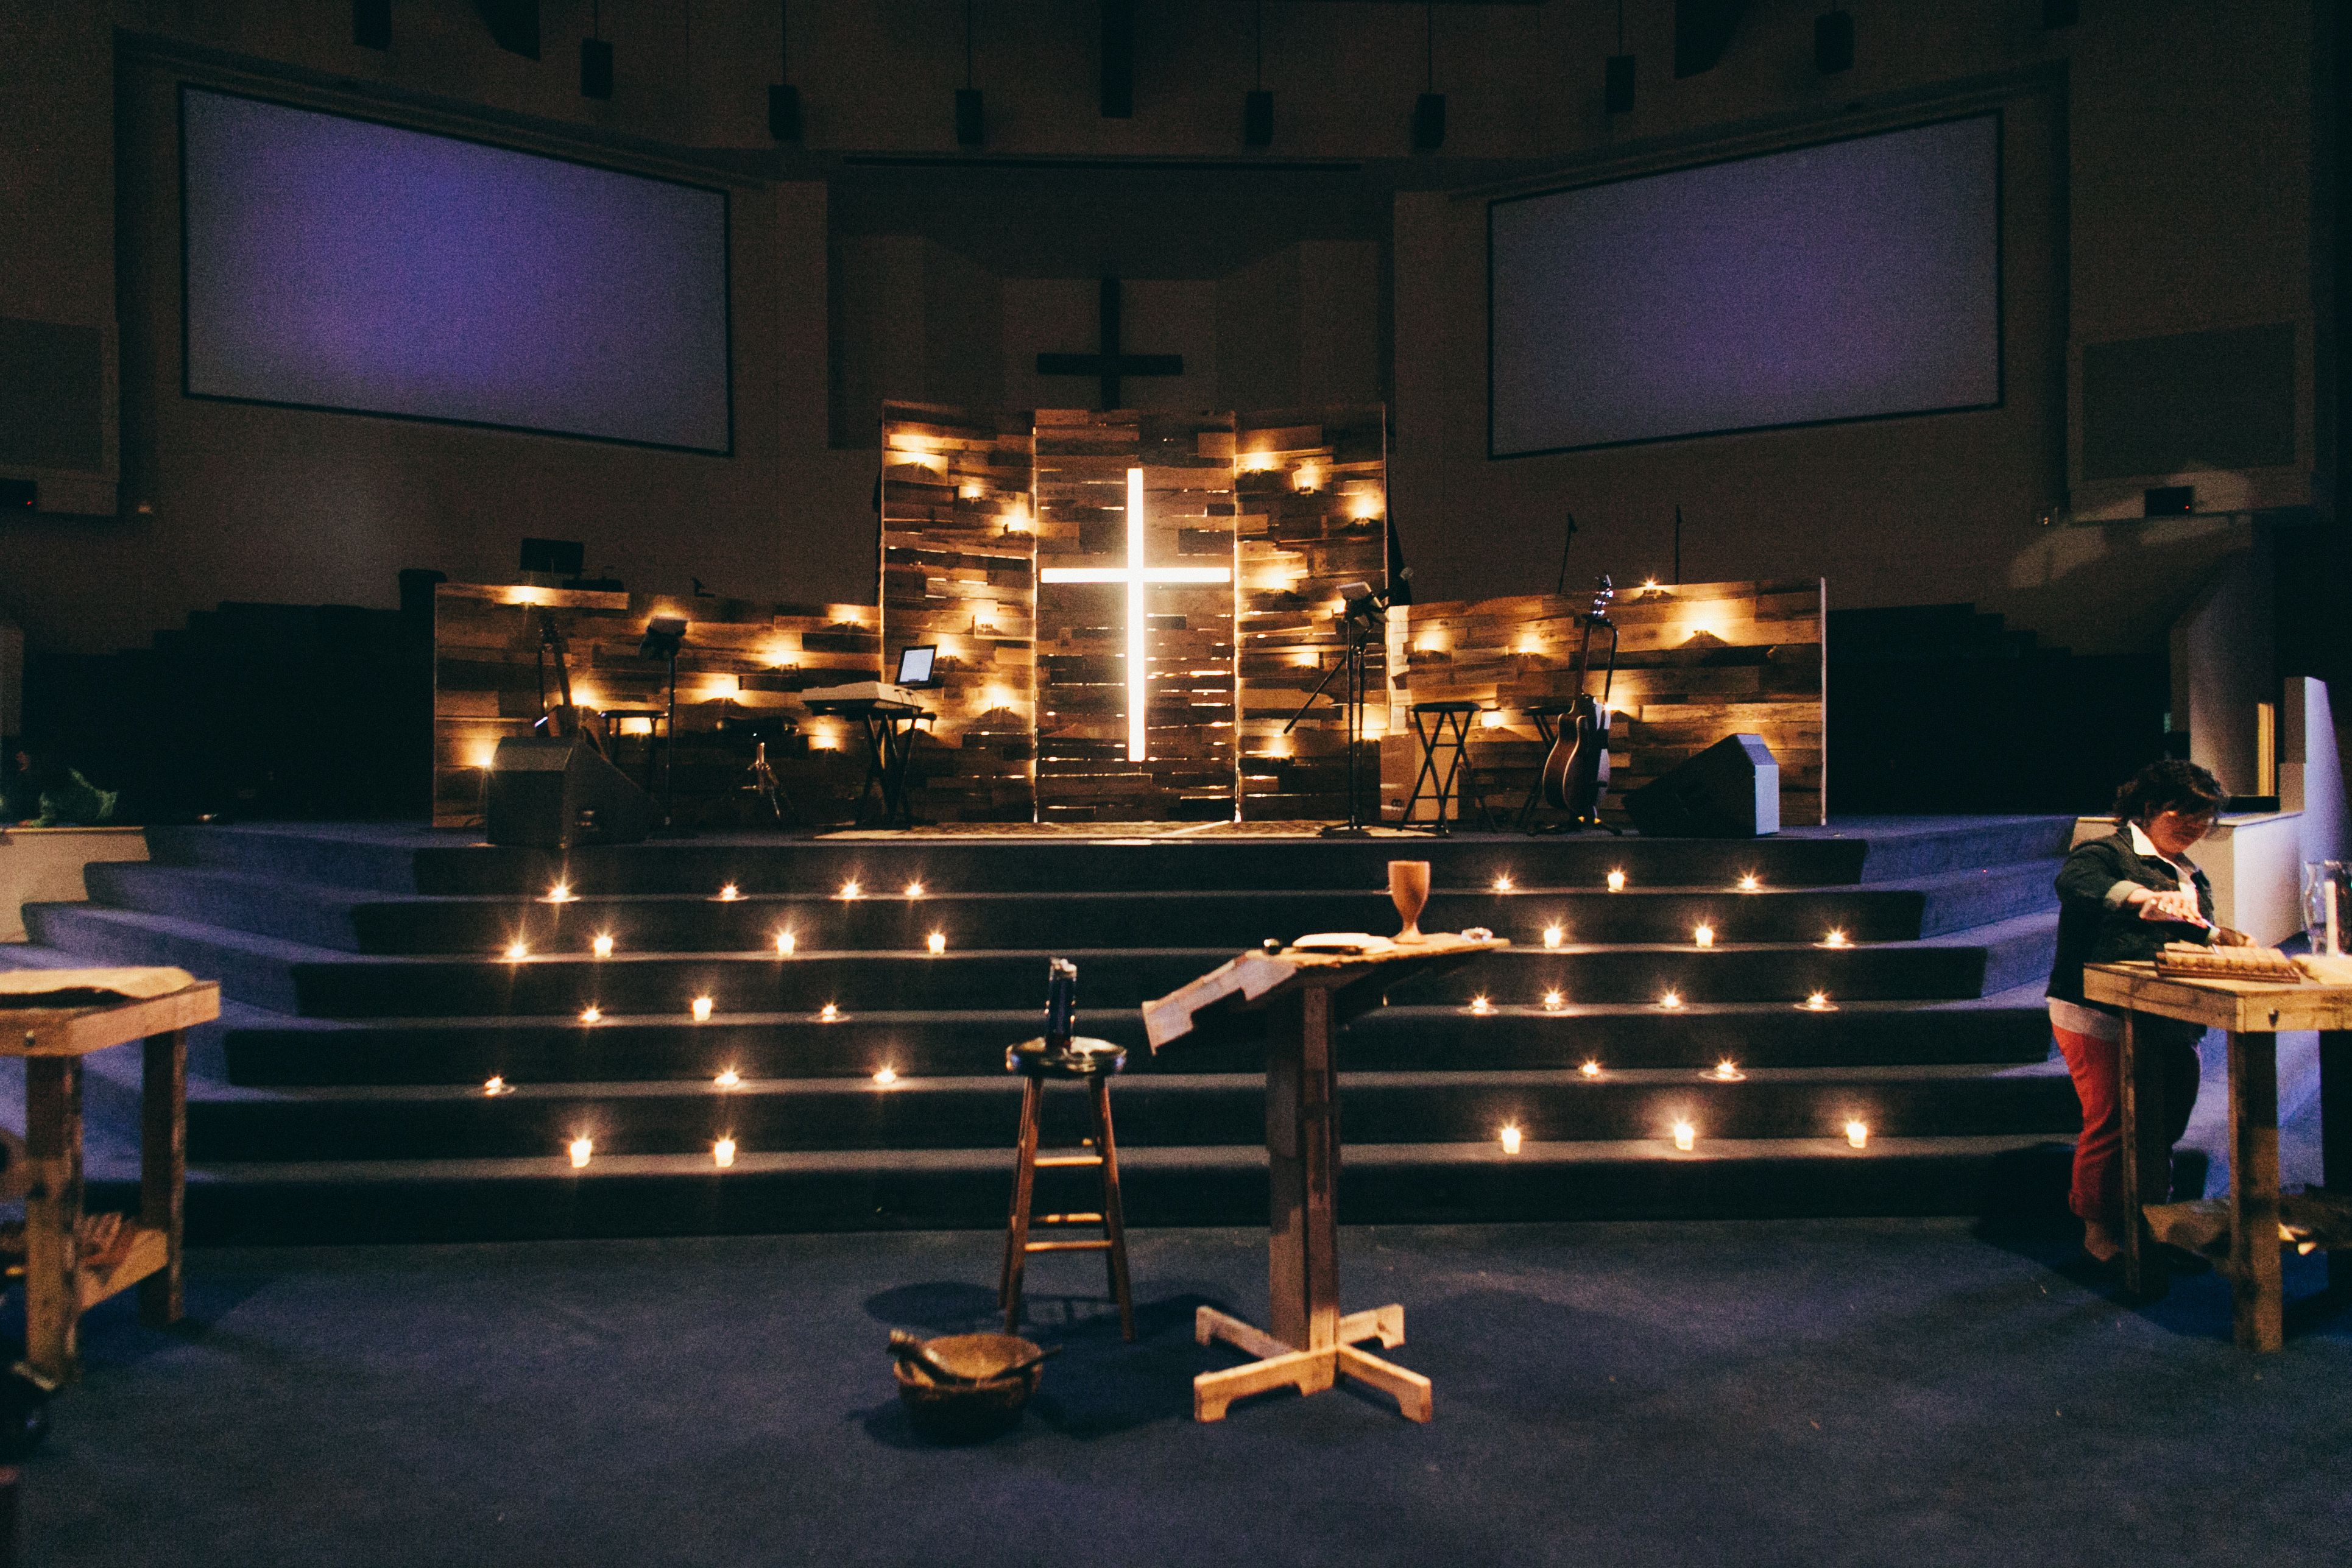 Church Stage Design Ideas For Cheap church stage design ideas streamers and balloons Find This Pin And More On Youth Room Design Ideas